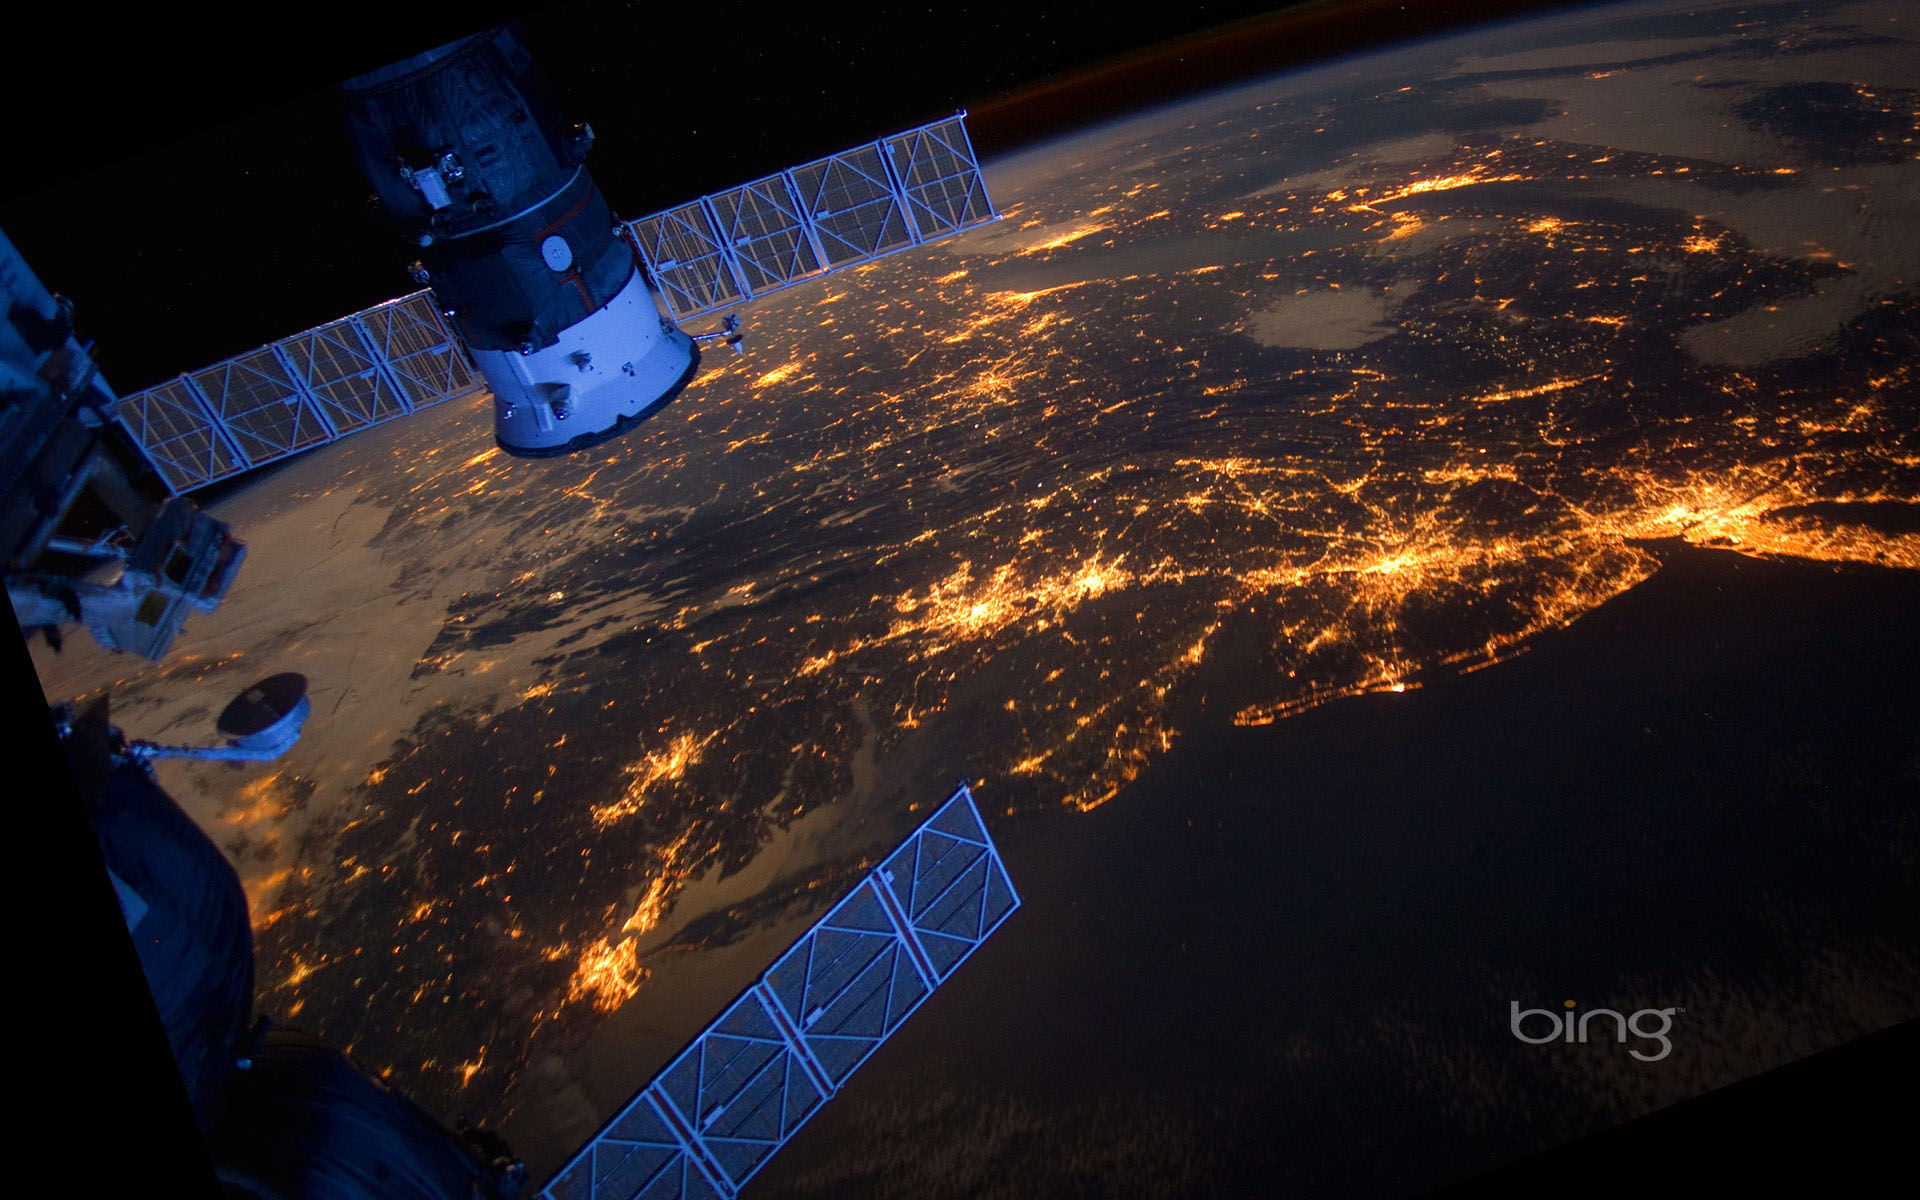 Iss Wallpapers Hd: The International Space Station